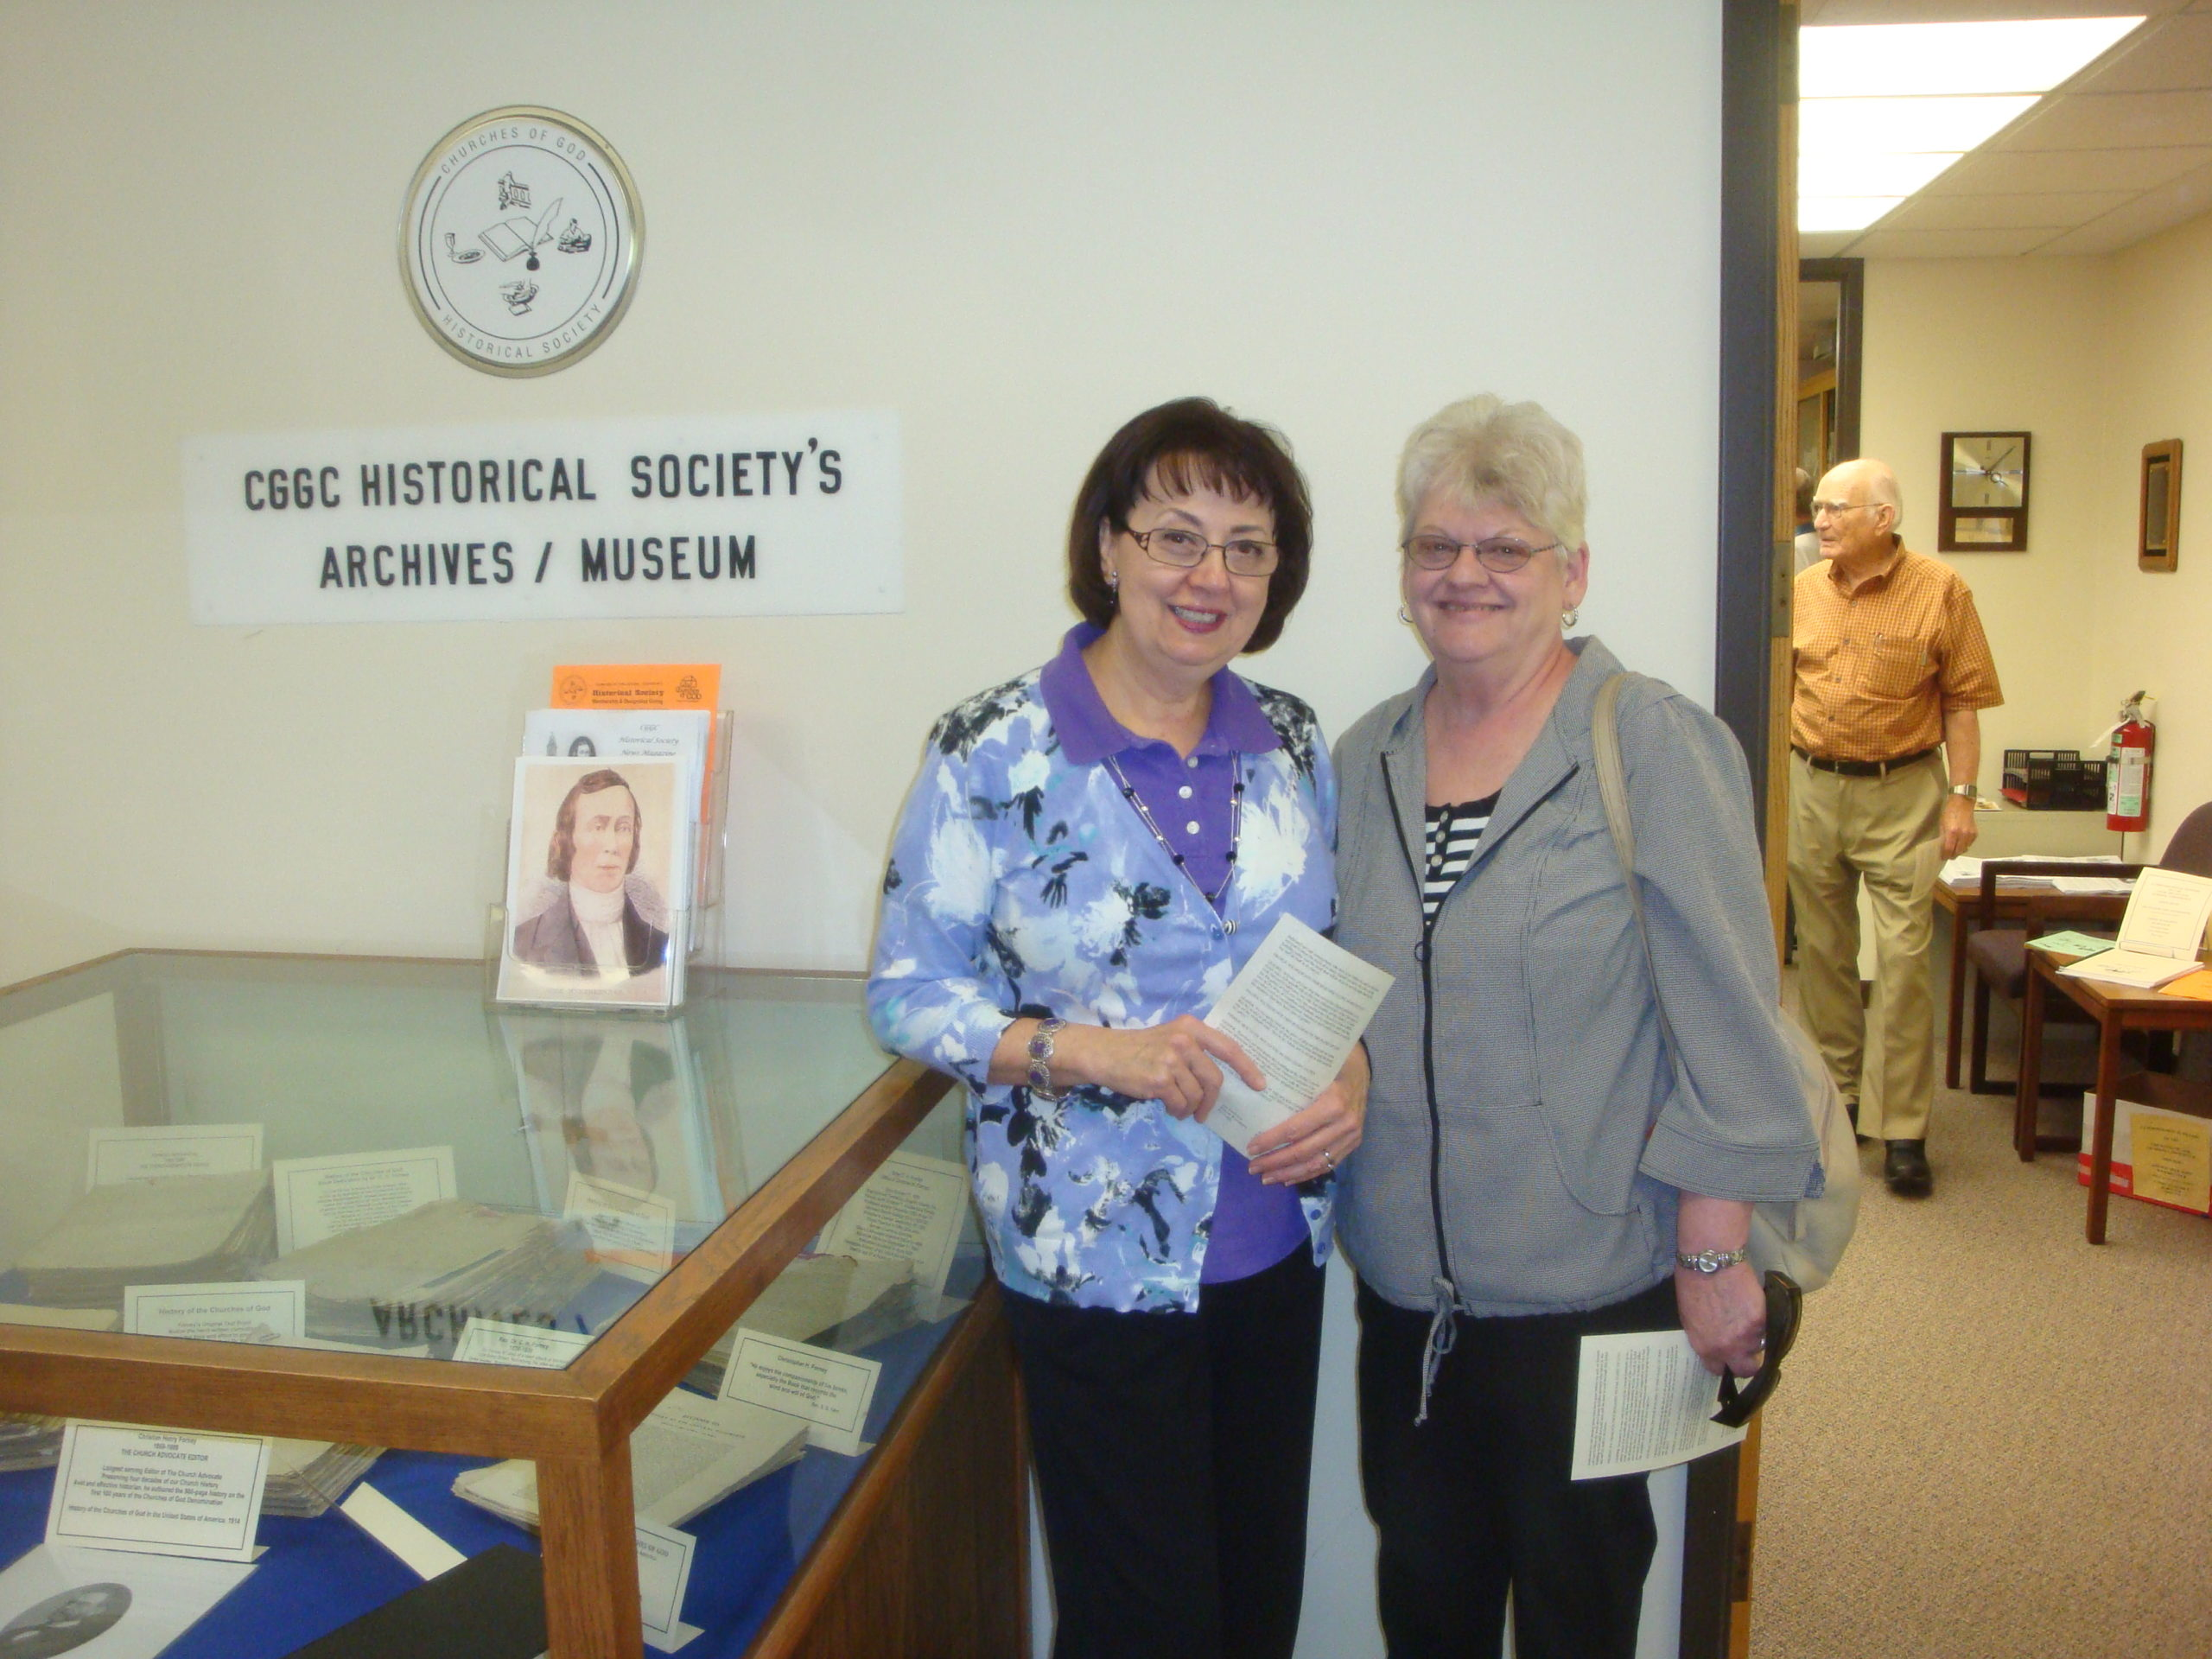 Donna marckel and Norma Trexler visit the Museum